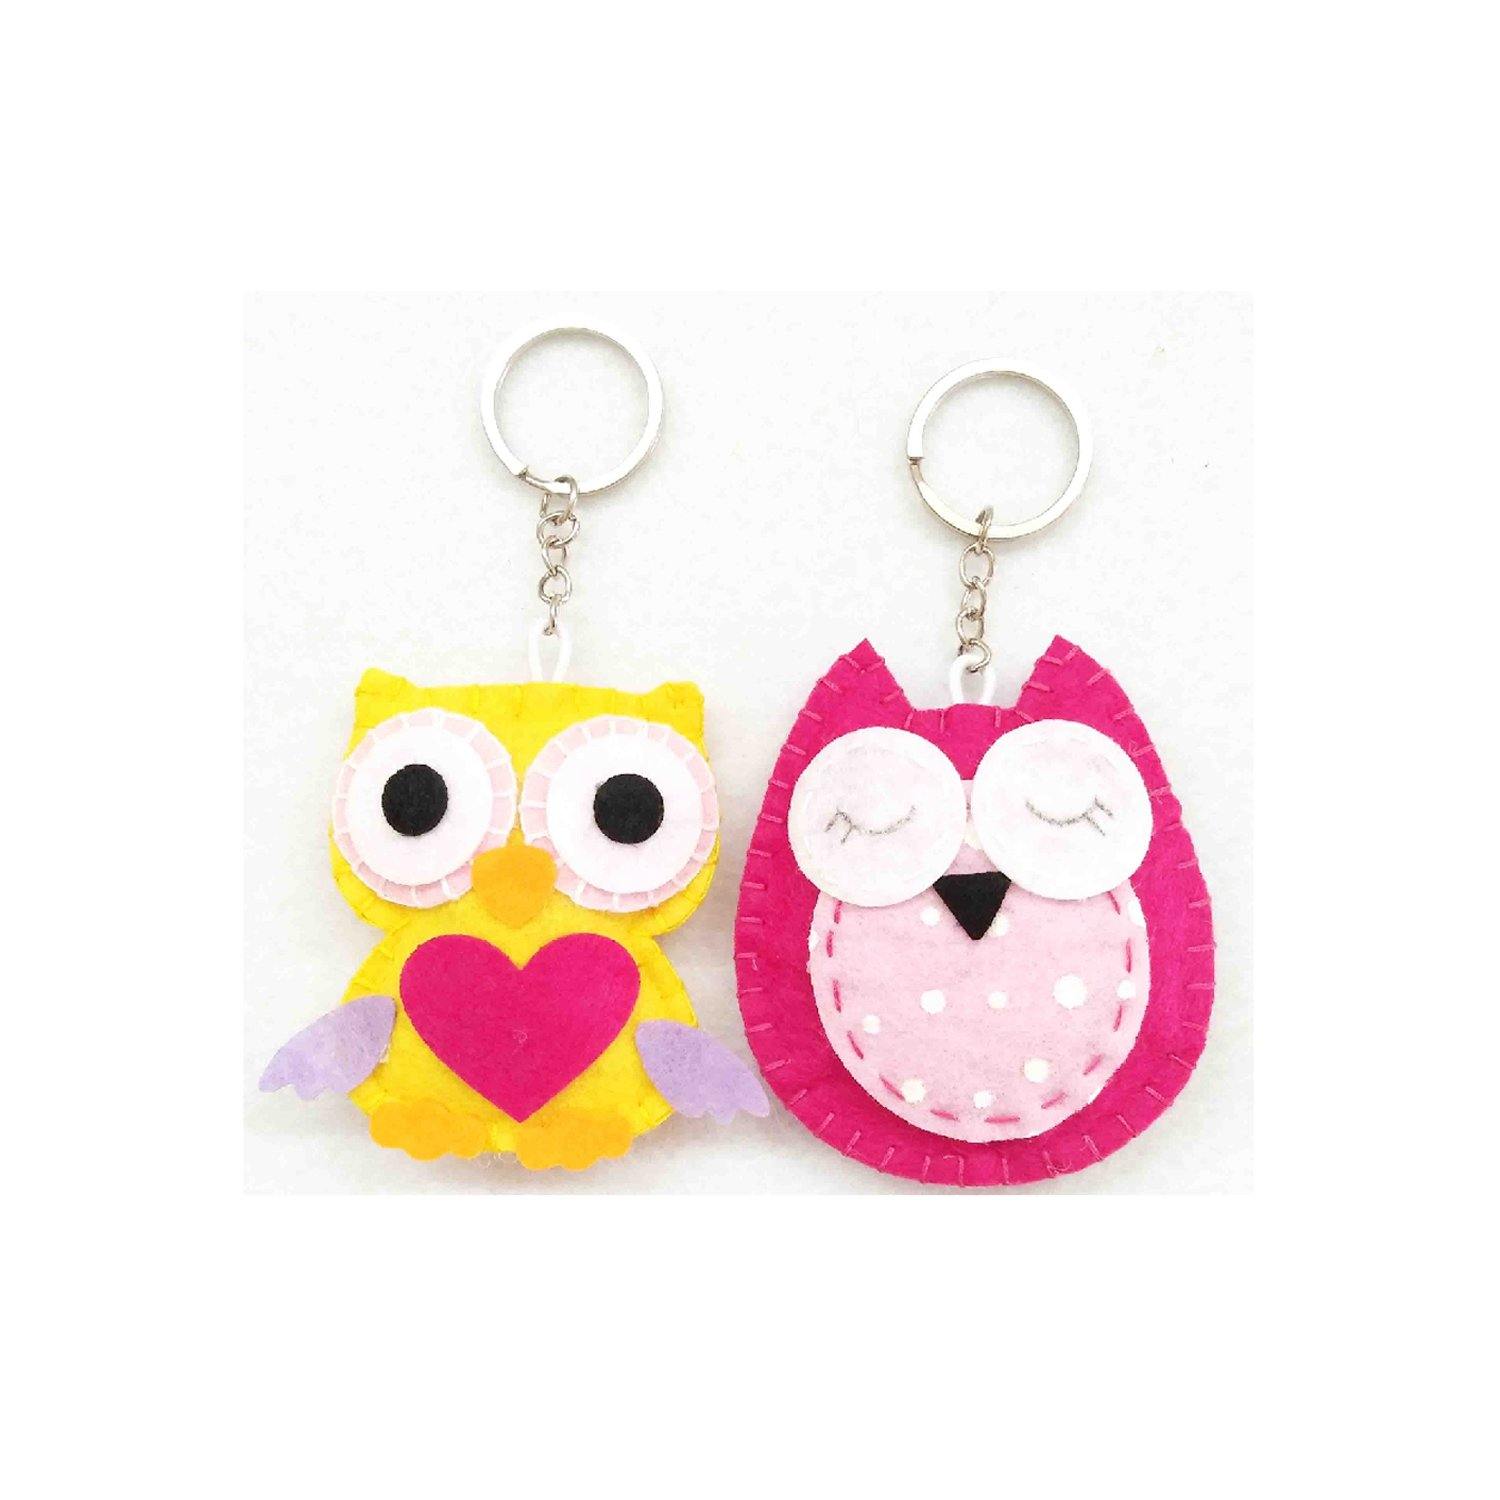 Amazon.com: innodept12 Sewing Kit Patchwork Owl: Felt and ...